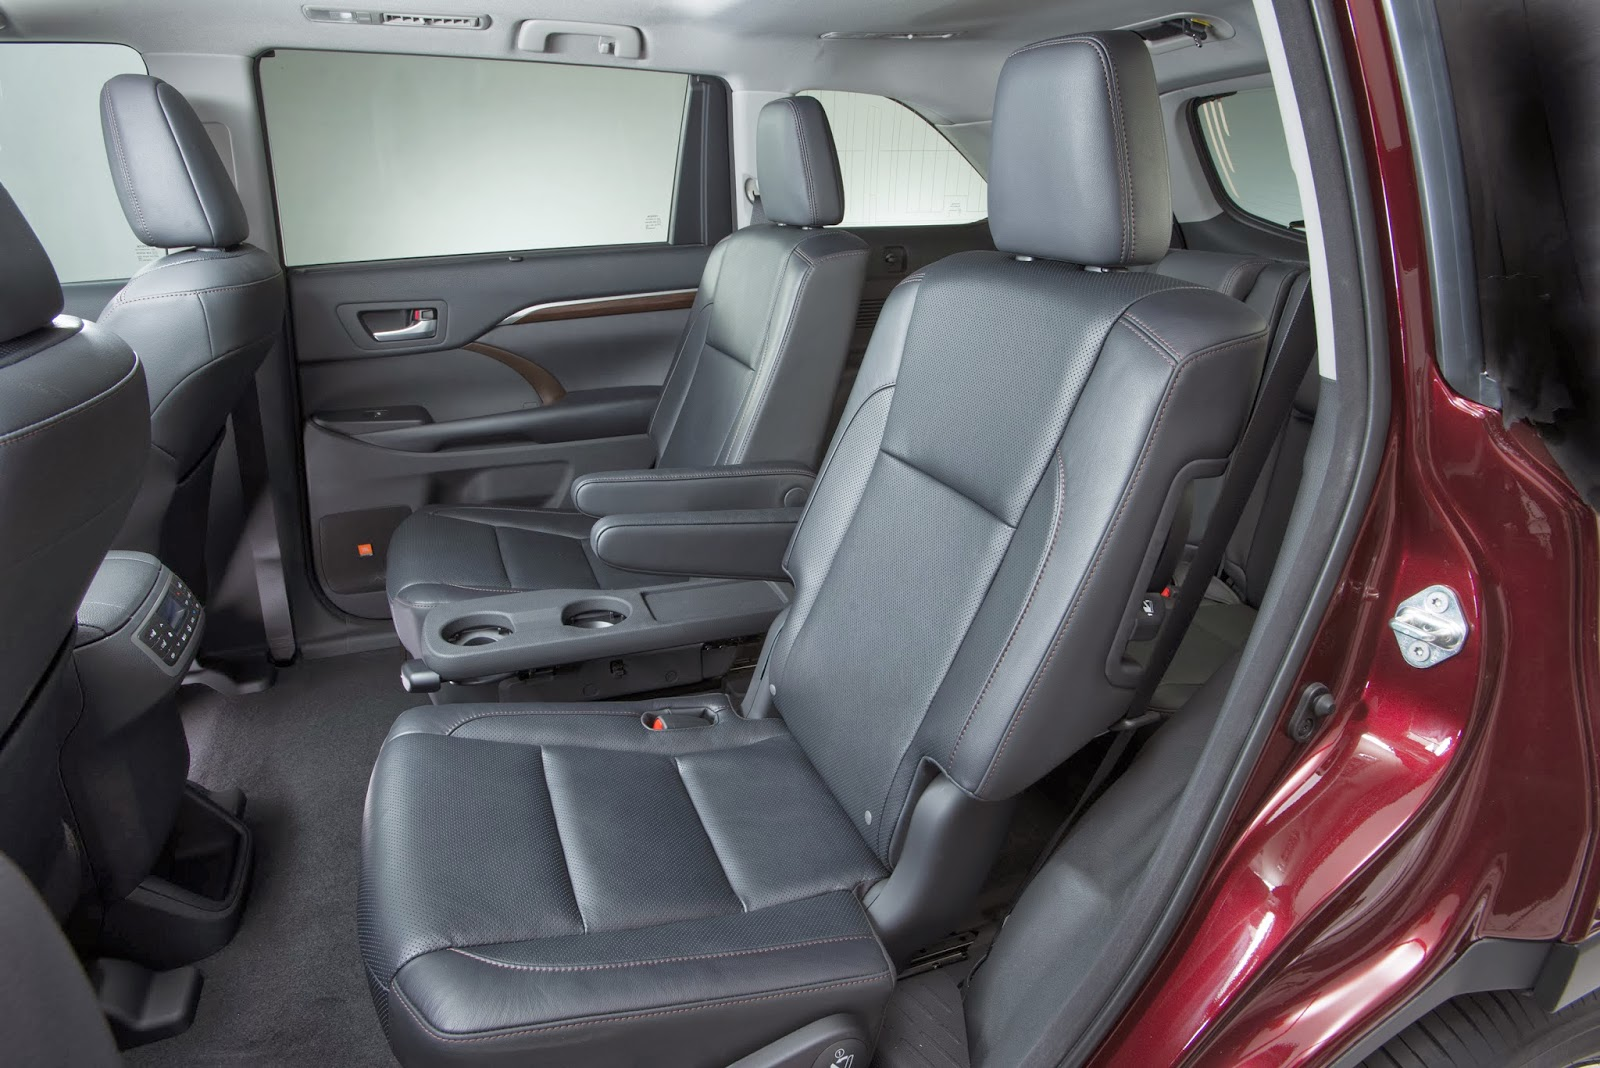 2015 Suvs With 2nd Row Captains Chairs.html   Autos Post